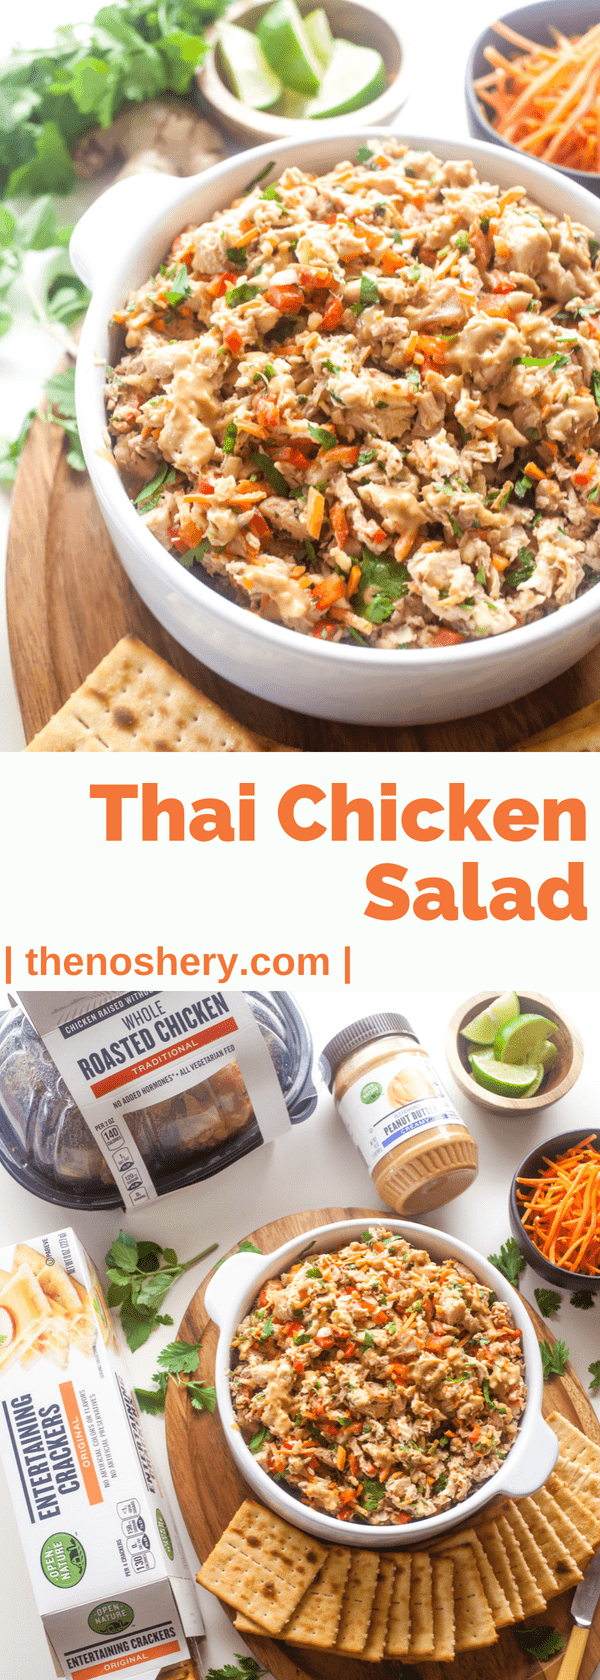 Thai Chicken Salad | An easy chicken salad loaded with sweet and spicy Thai flavors. A great make-ahead salad for healthy lunch throughout the week. | The Noshery